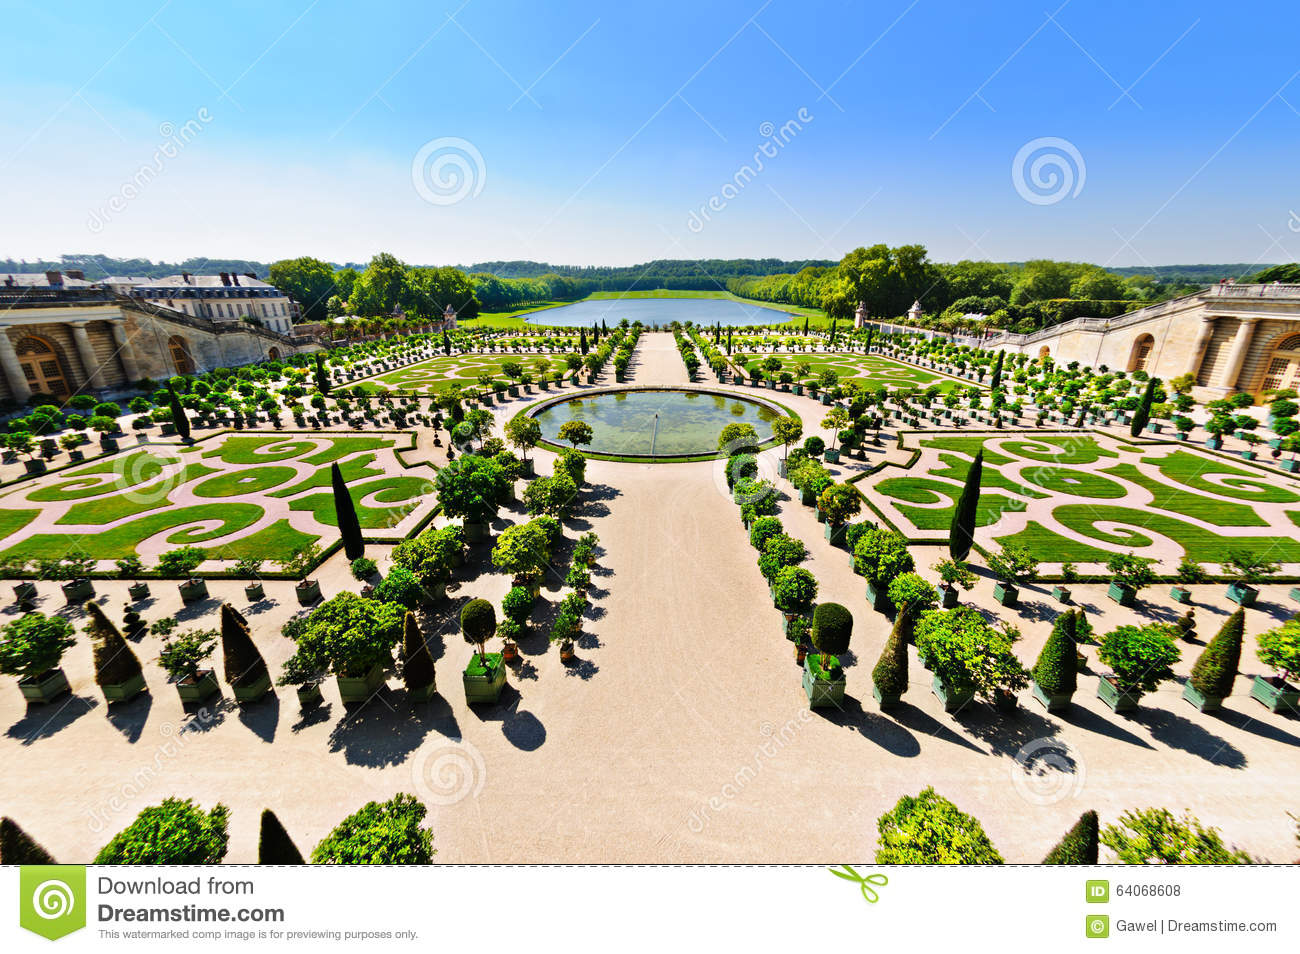 Le jardin de versailles paris france photo stock image for Le jardin de france